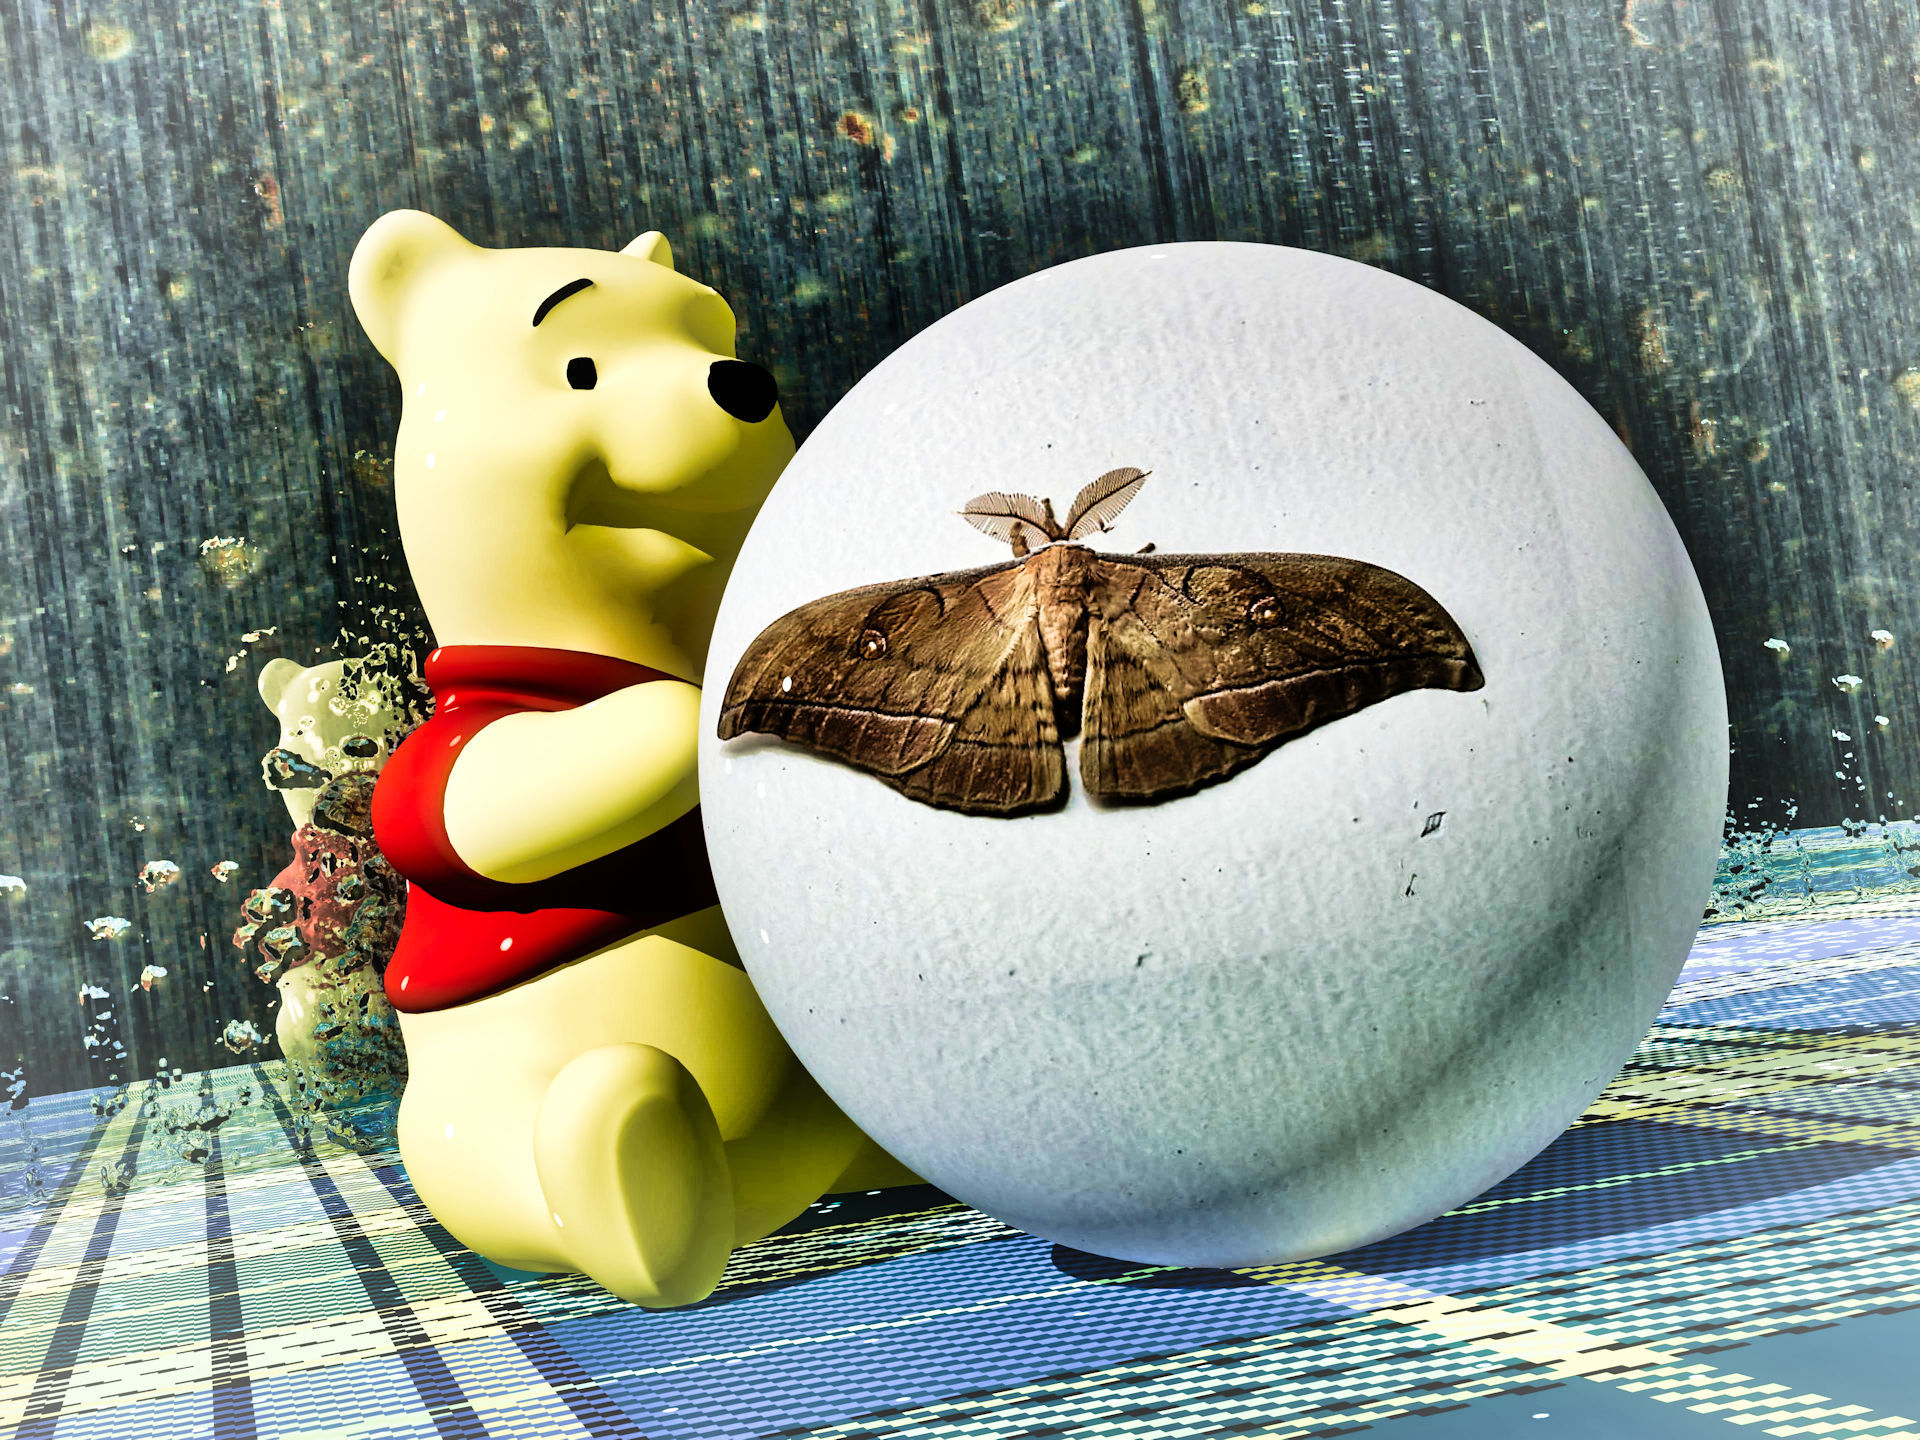 Winnie-the-Pooh & The Rolling Ball